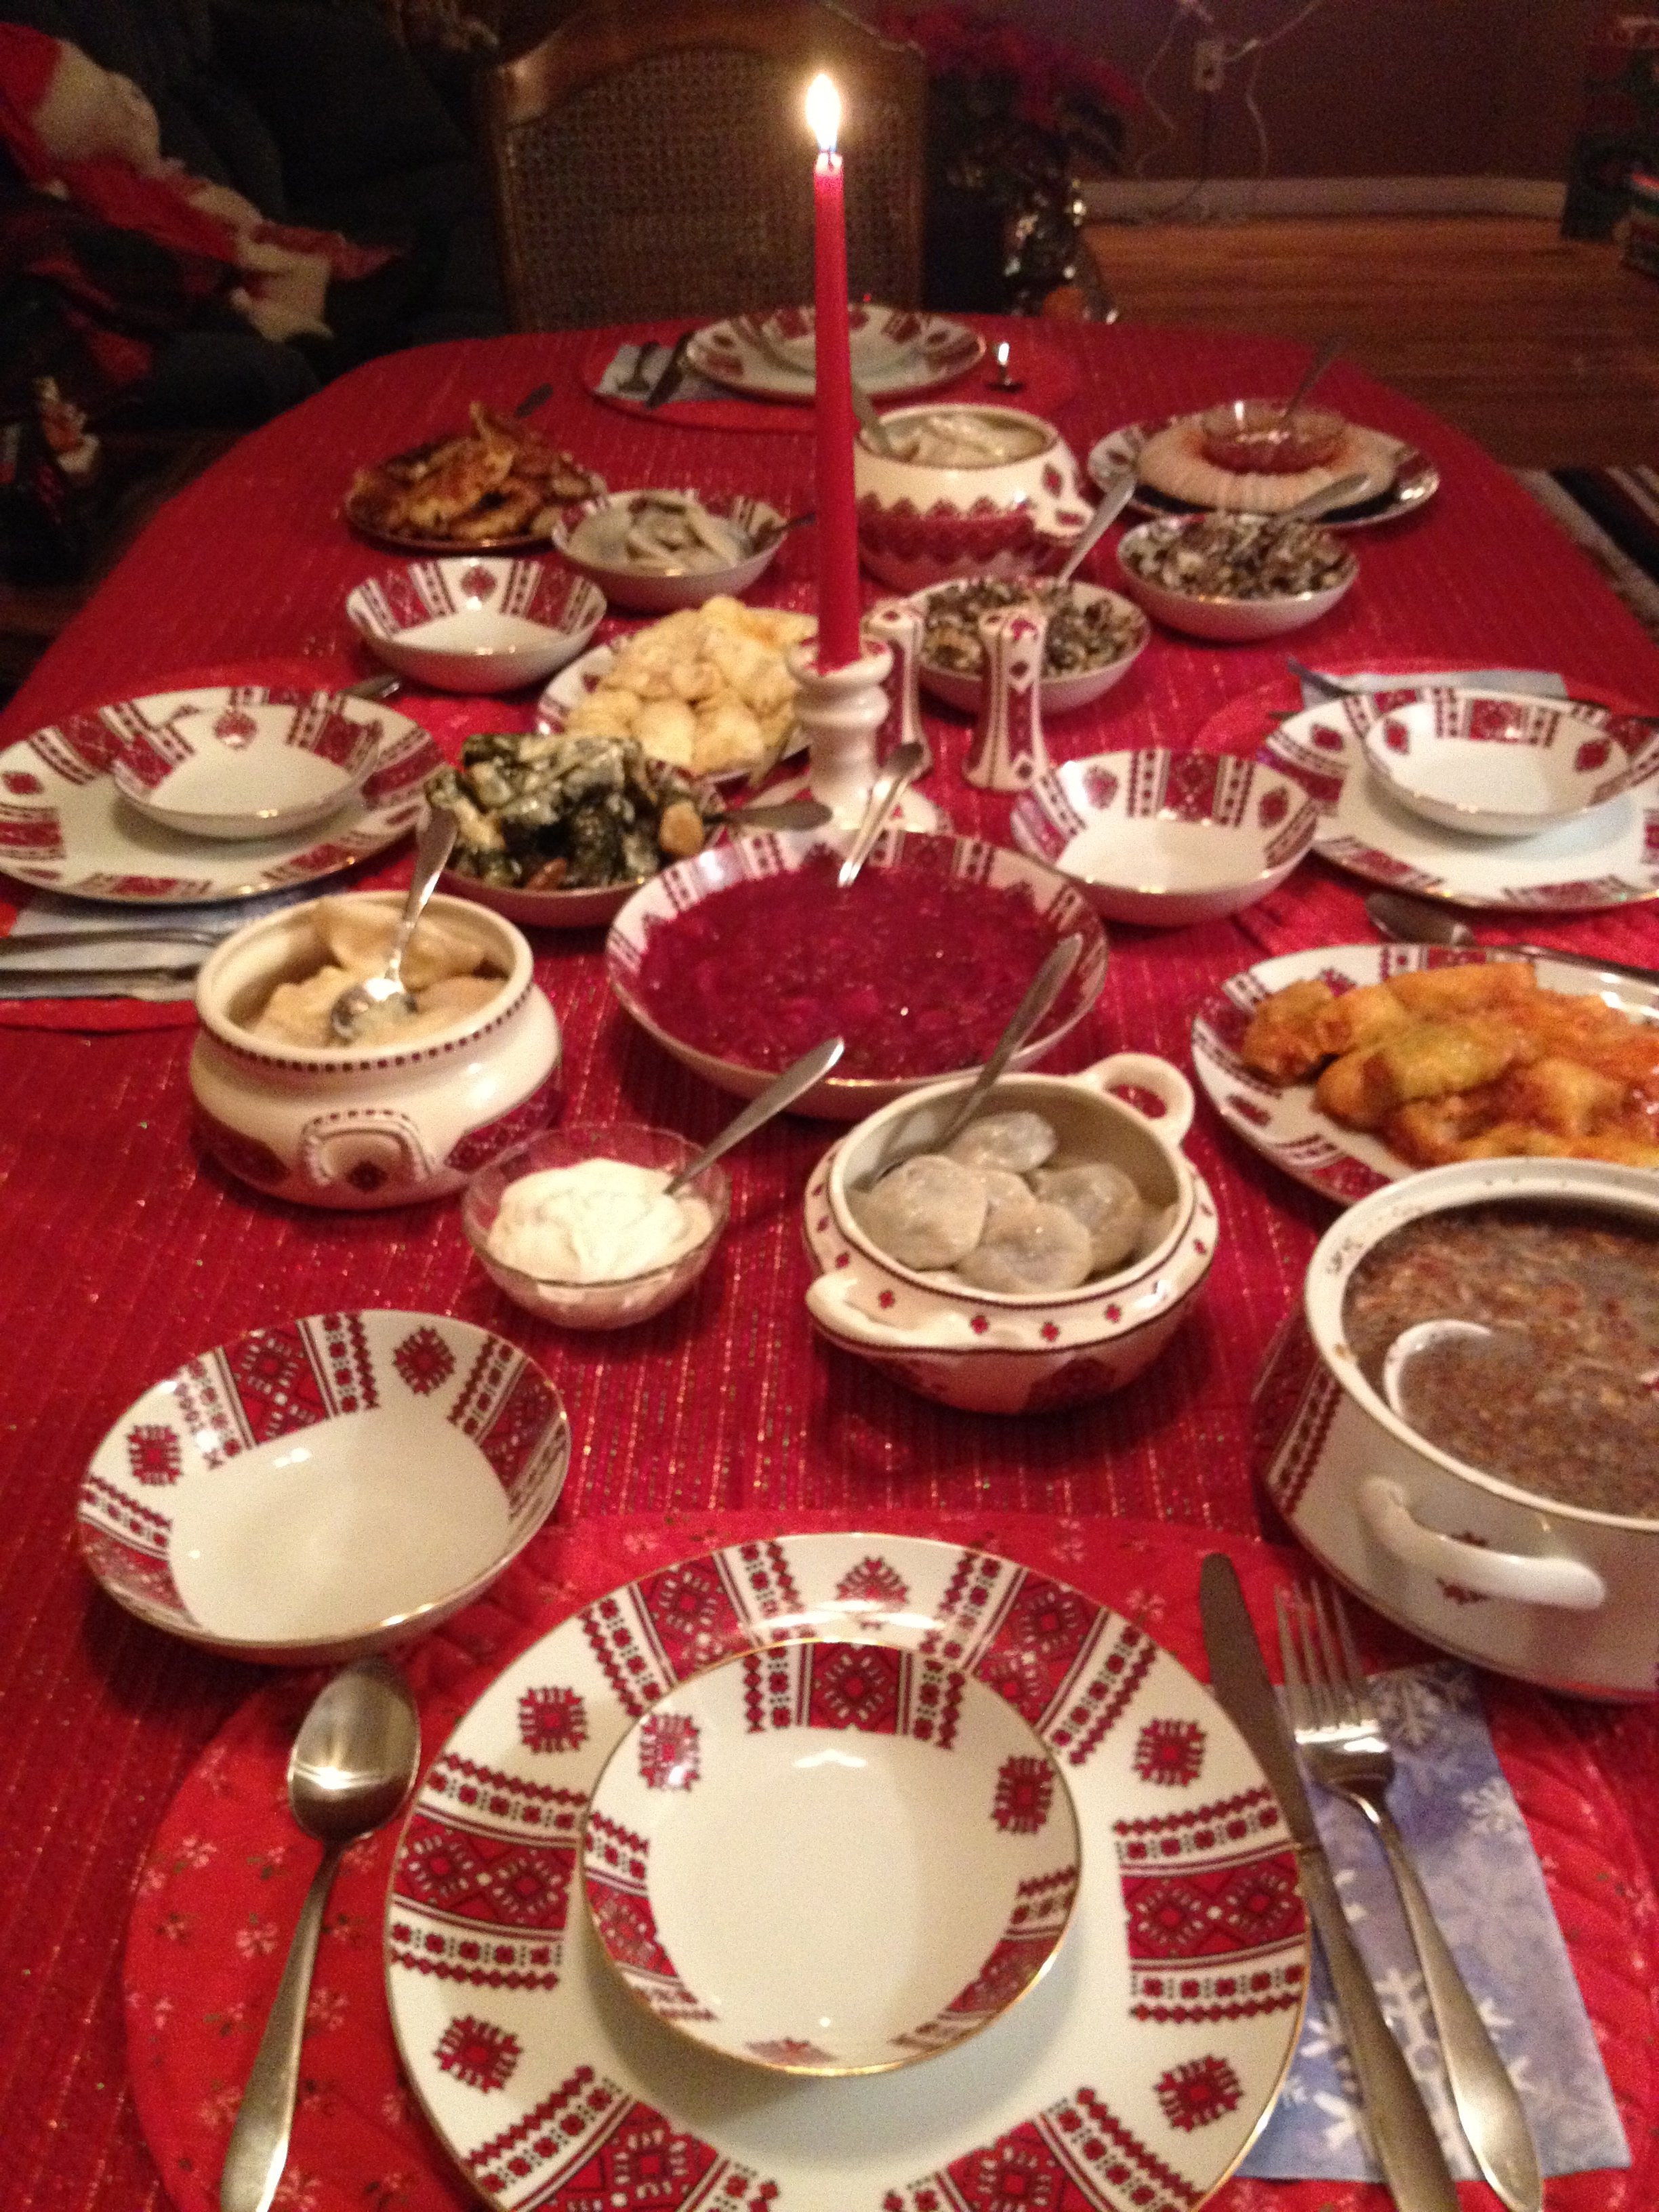 12 ukrainian dishes for christmas eve recipes plus bonus recipes for christmas day